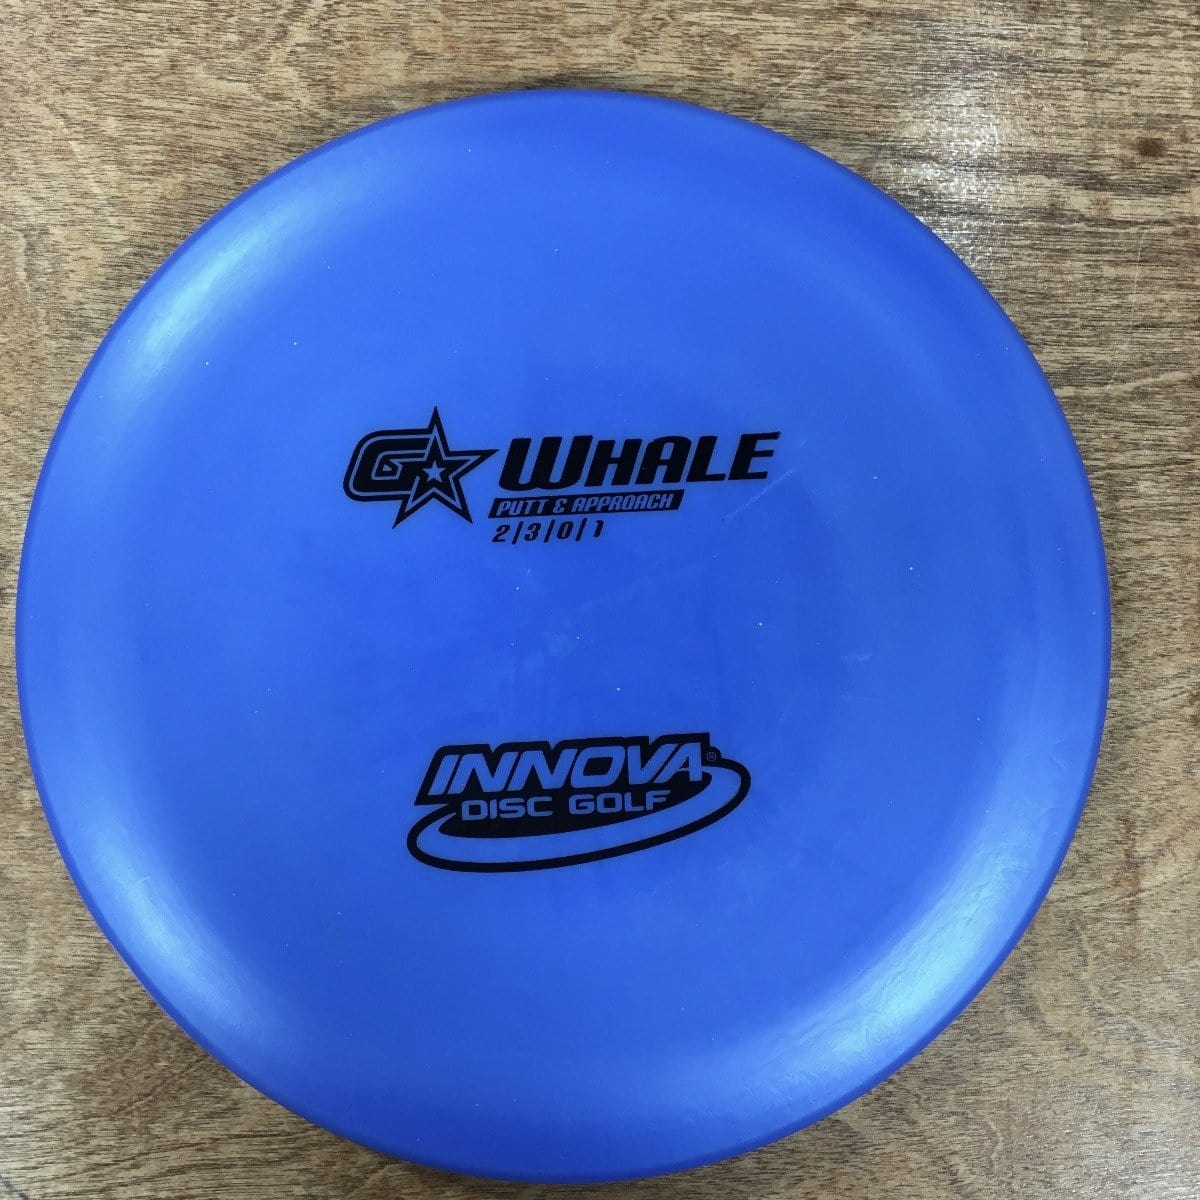 G Star Whale Putter